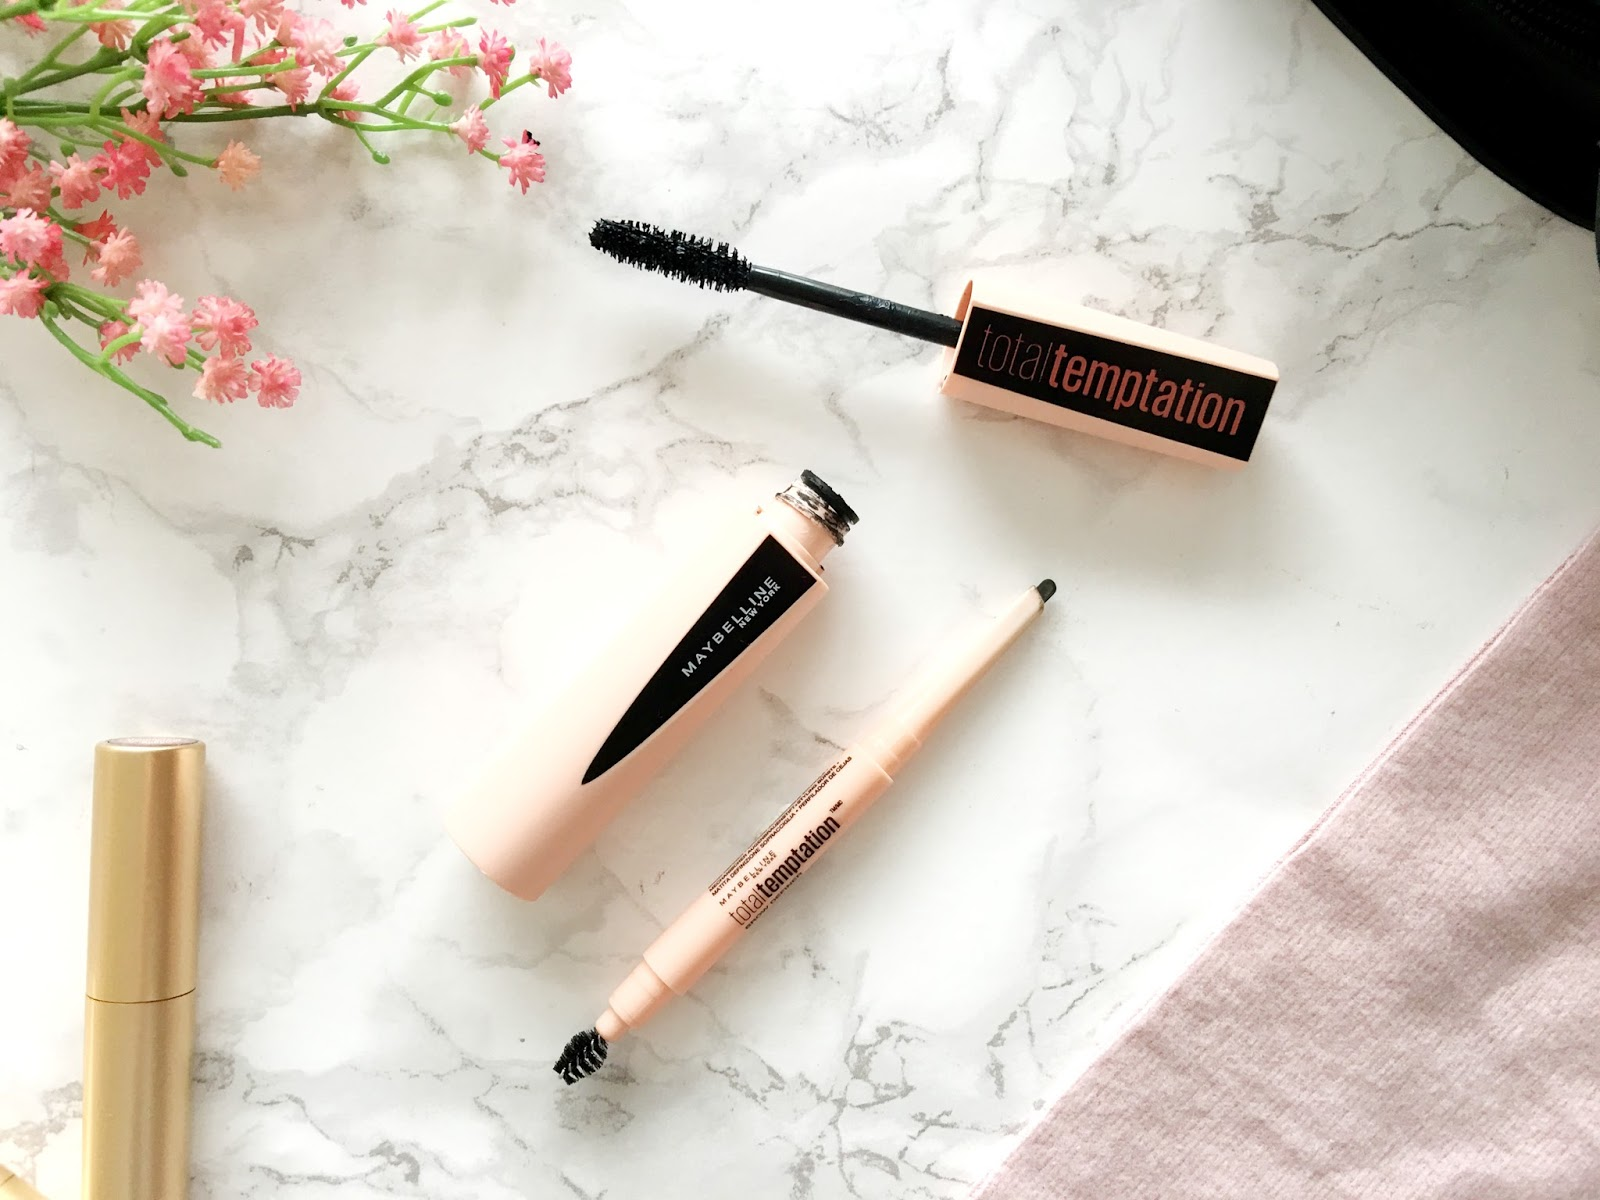 Maybelline Total Temptation Mascara and Brow Definer